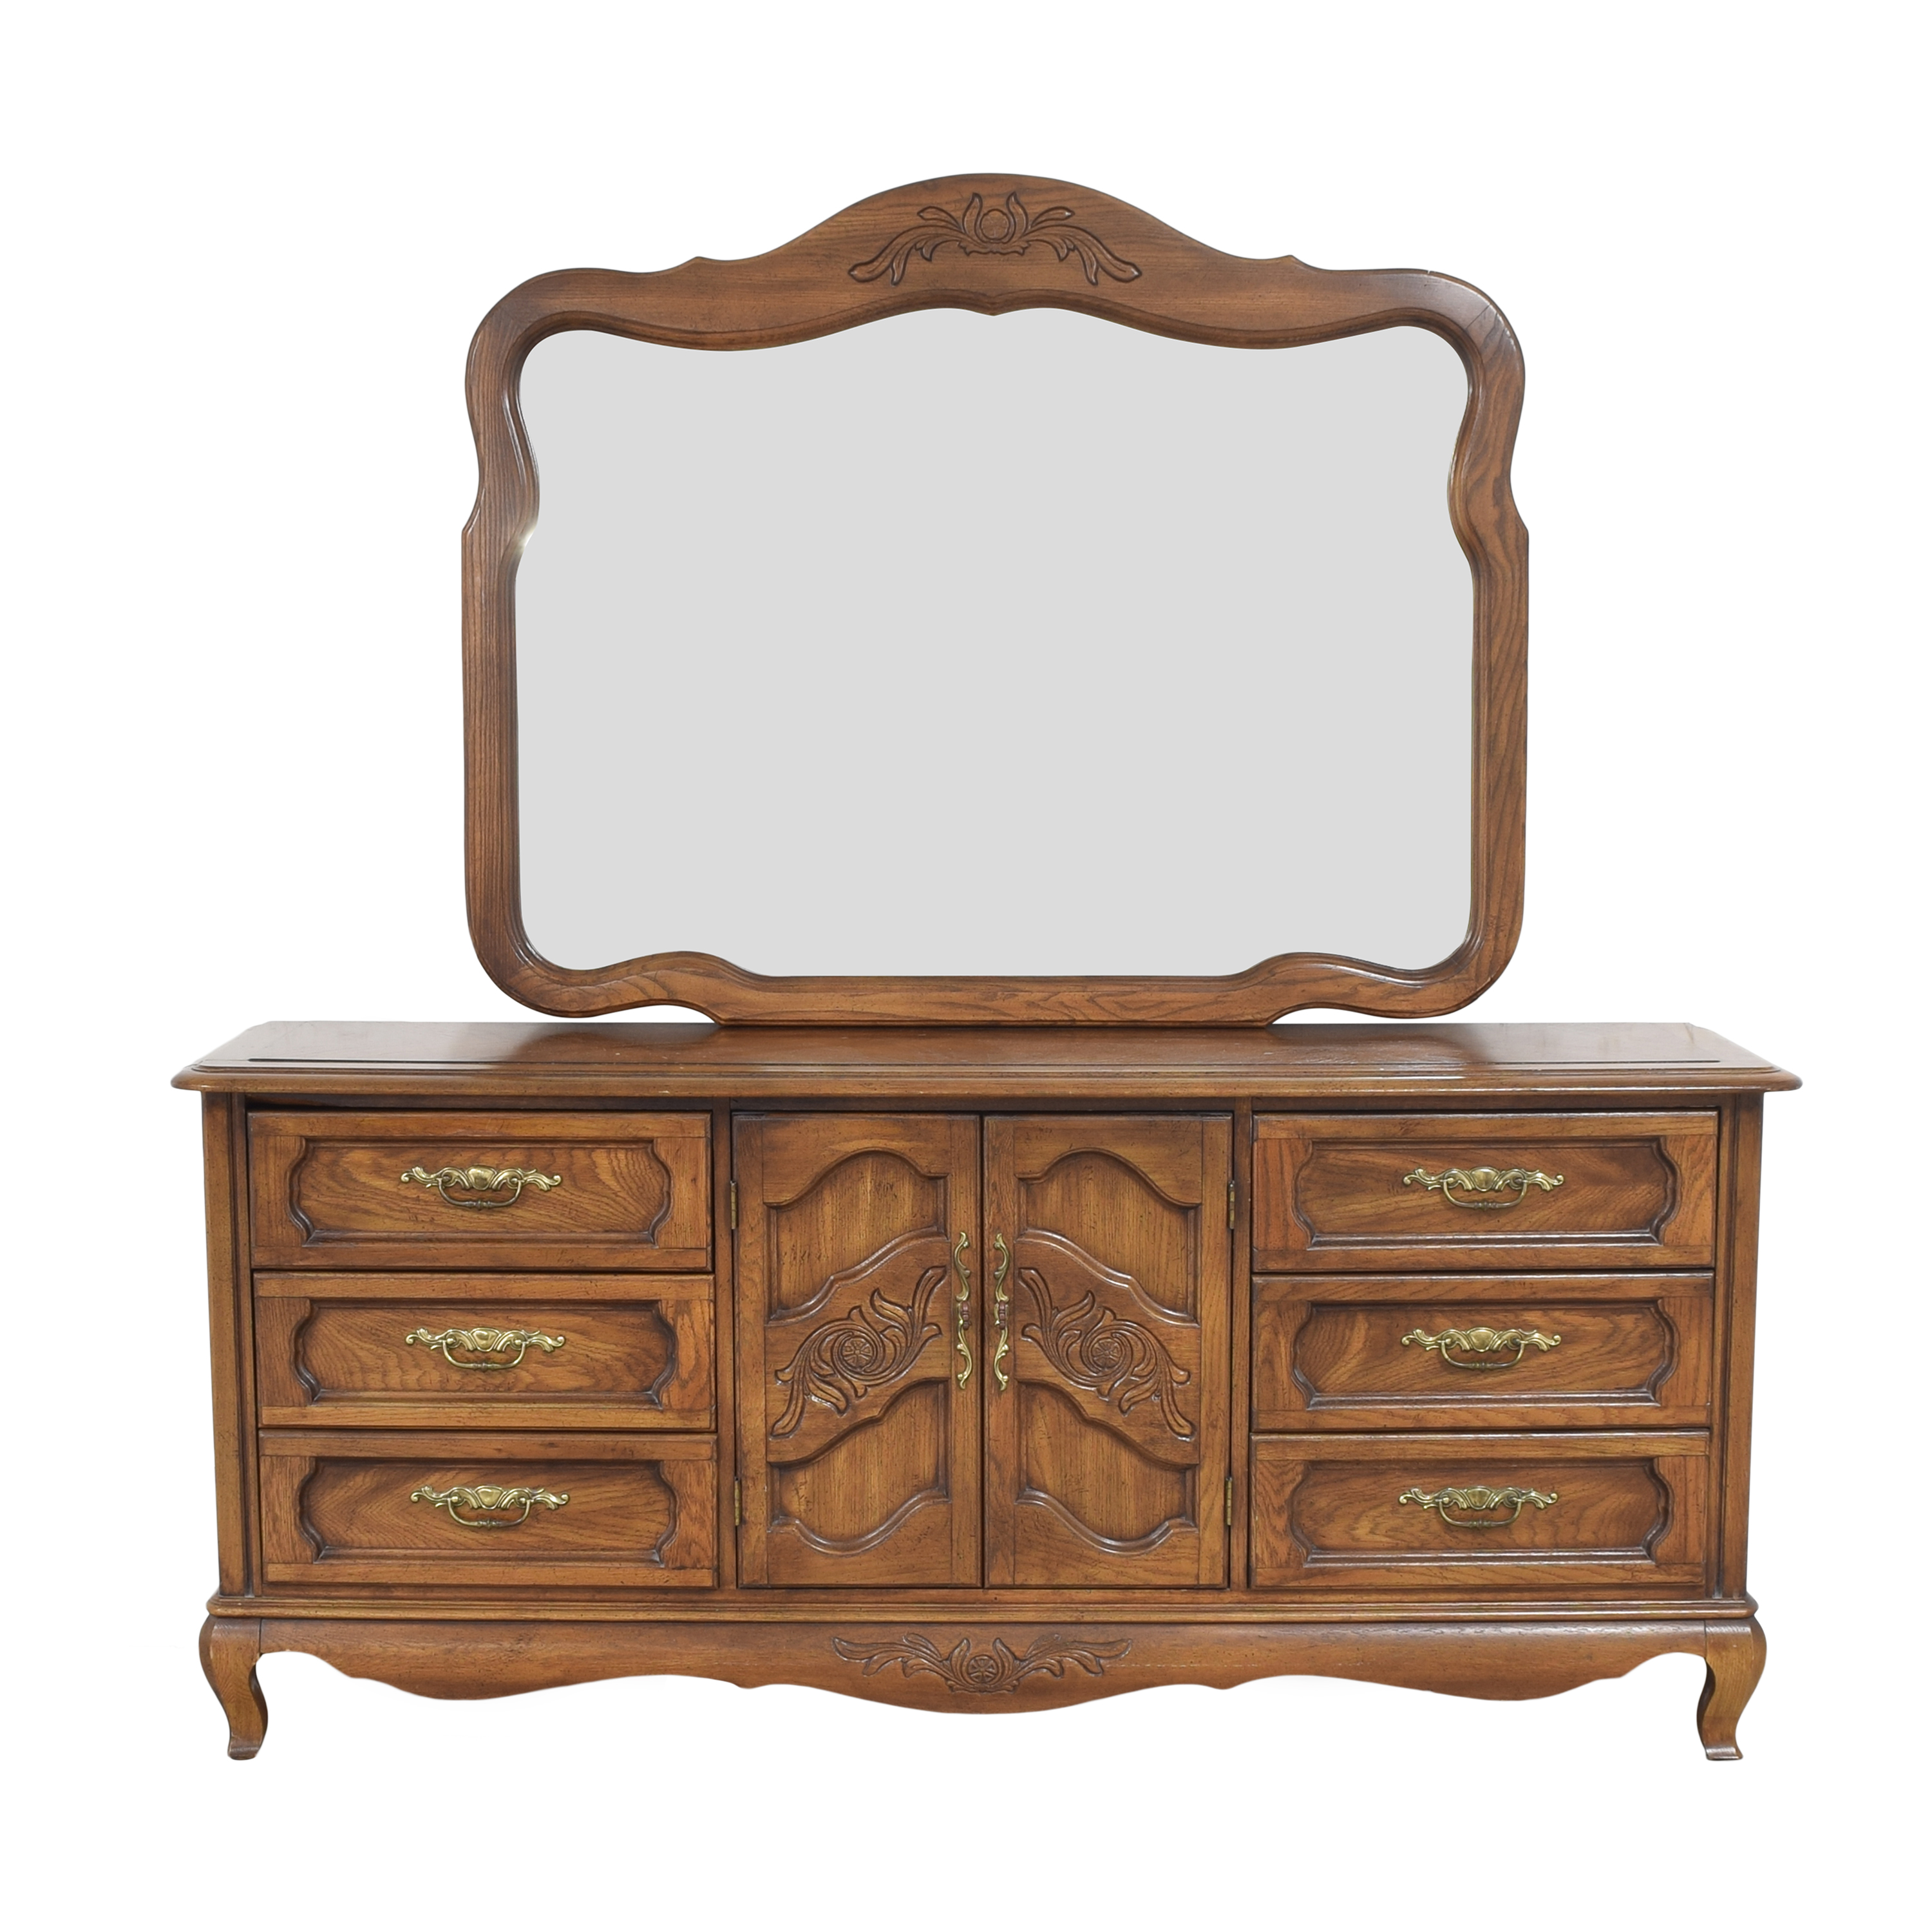 Huffman Koos Huffman Koos French Provincial Wide Dresser with Mirror price